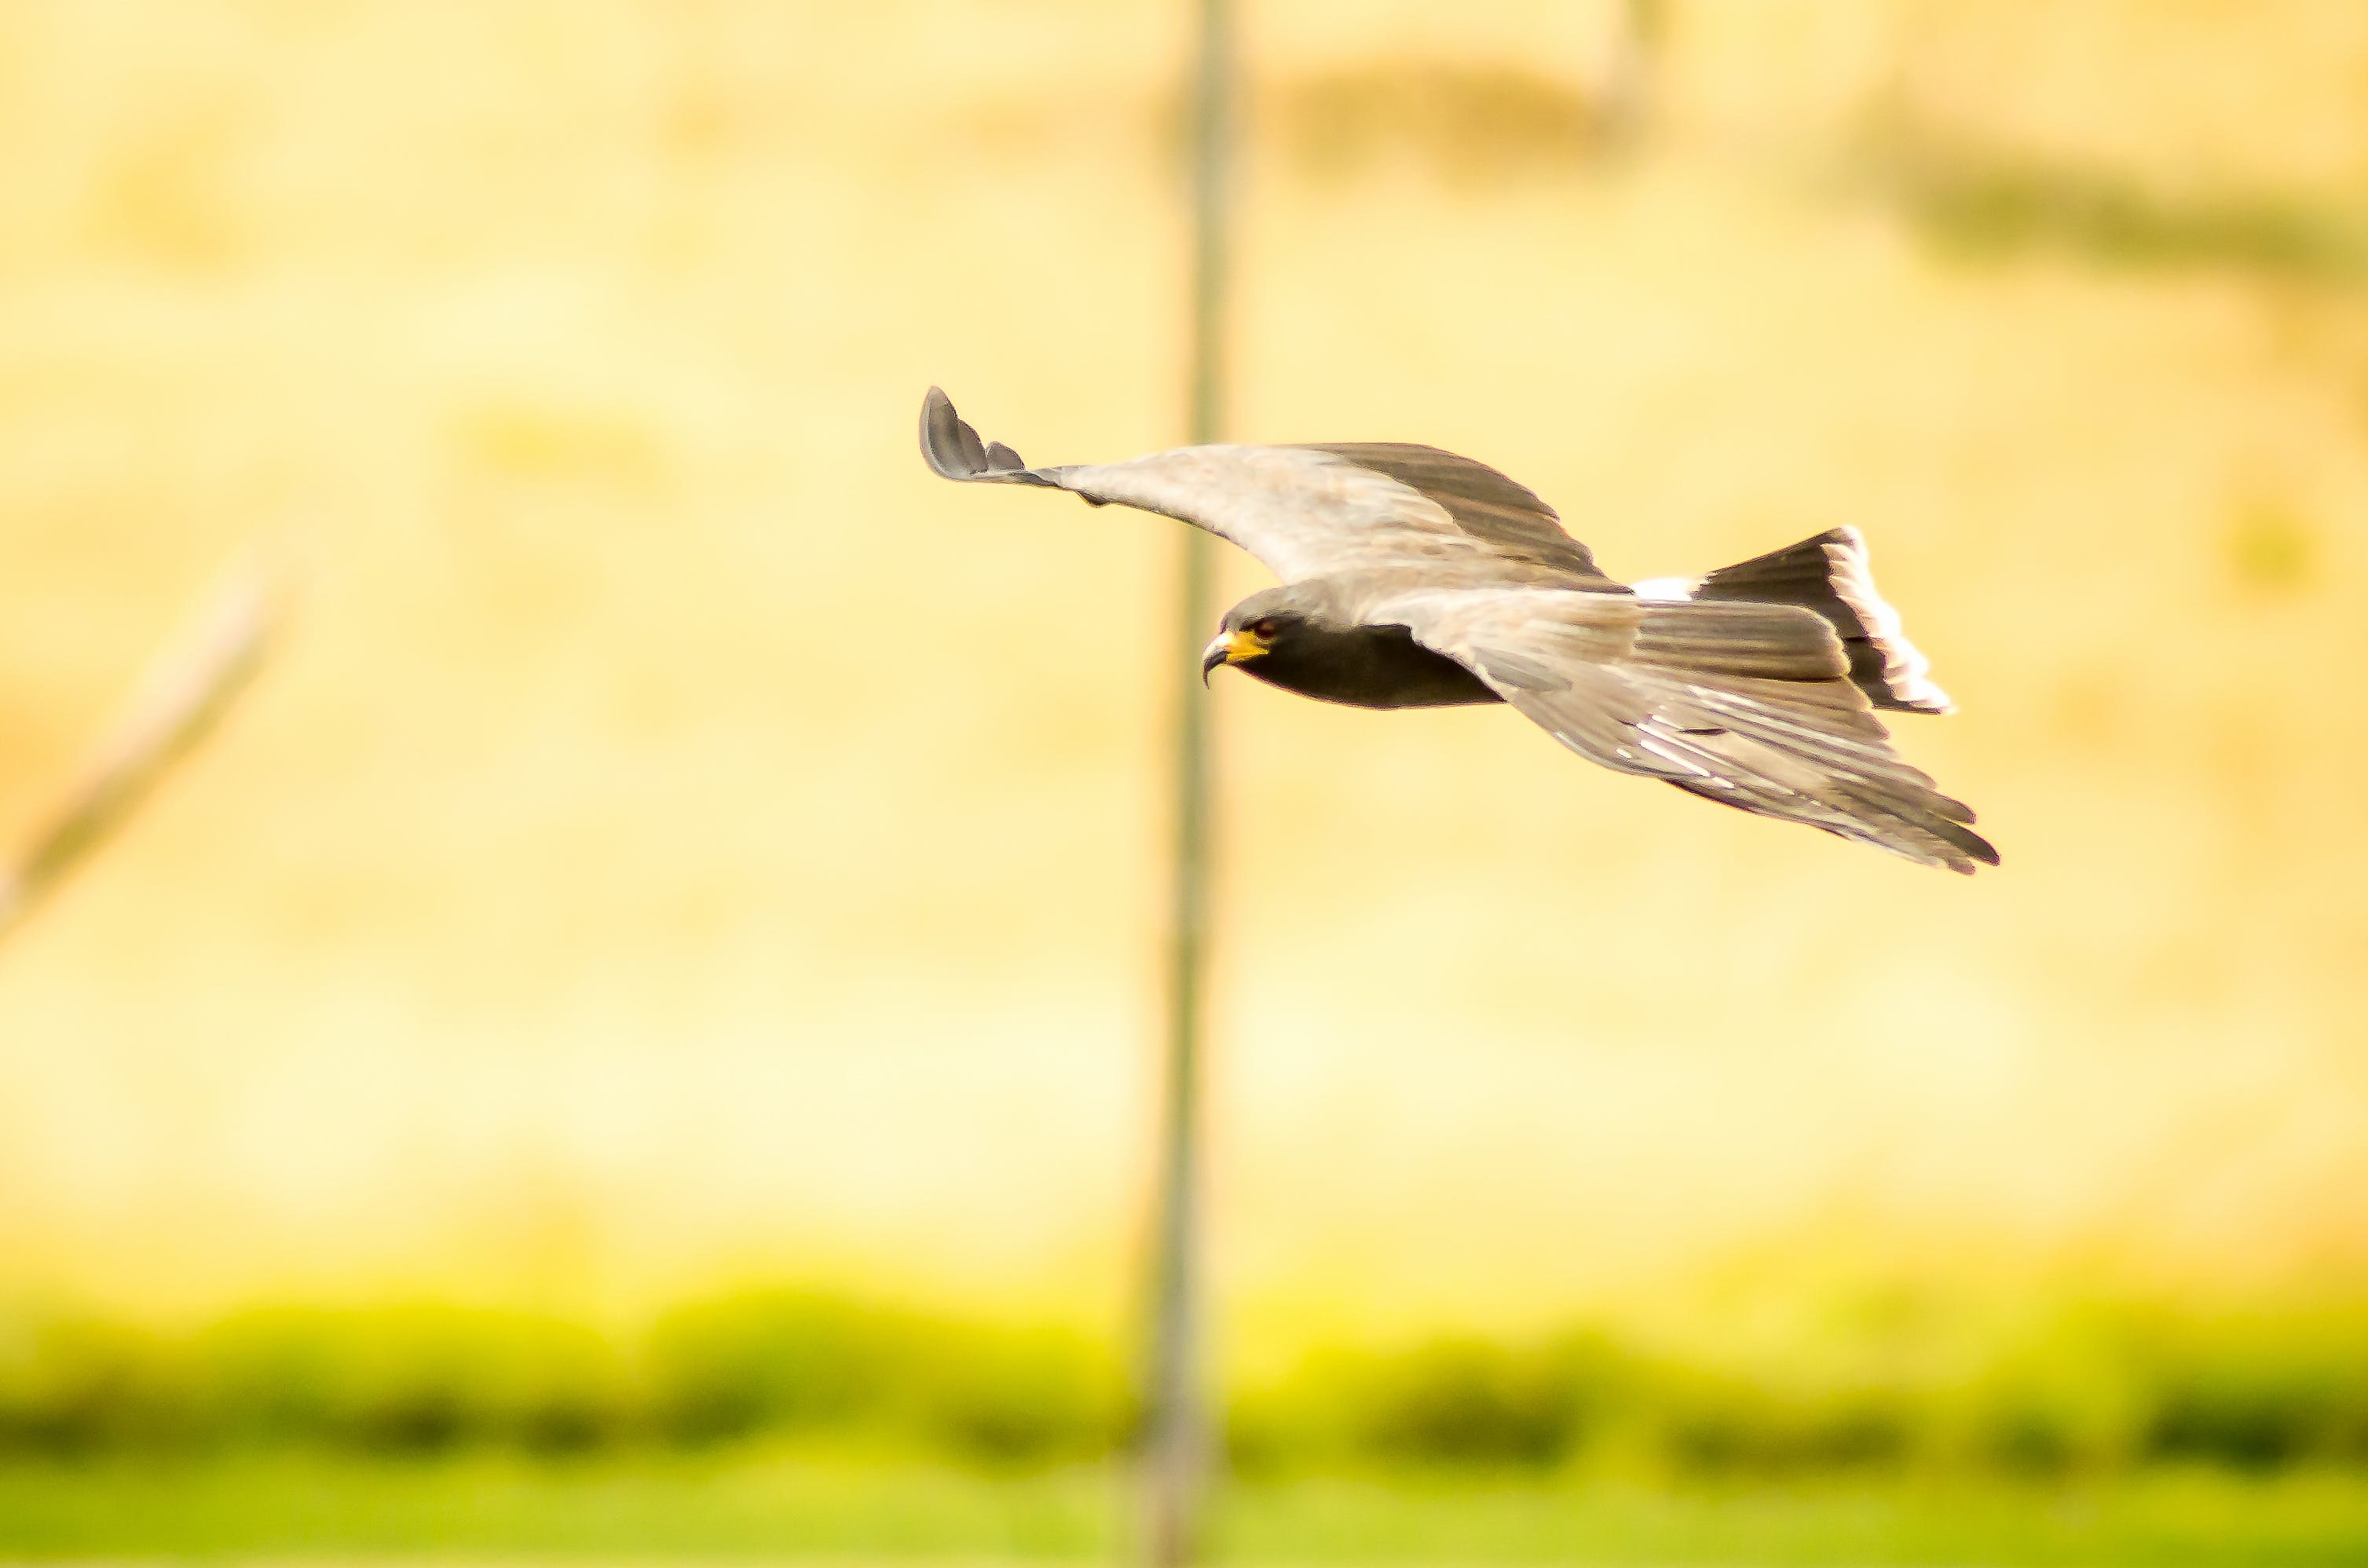 Free stock photo of flight, bird, flying, animal